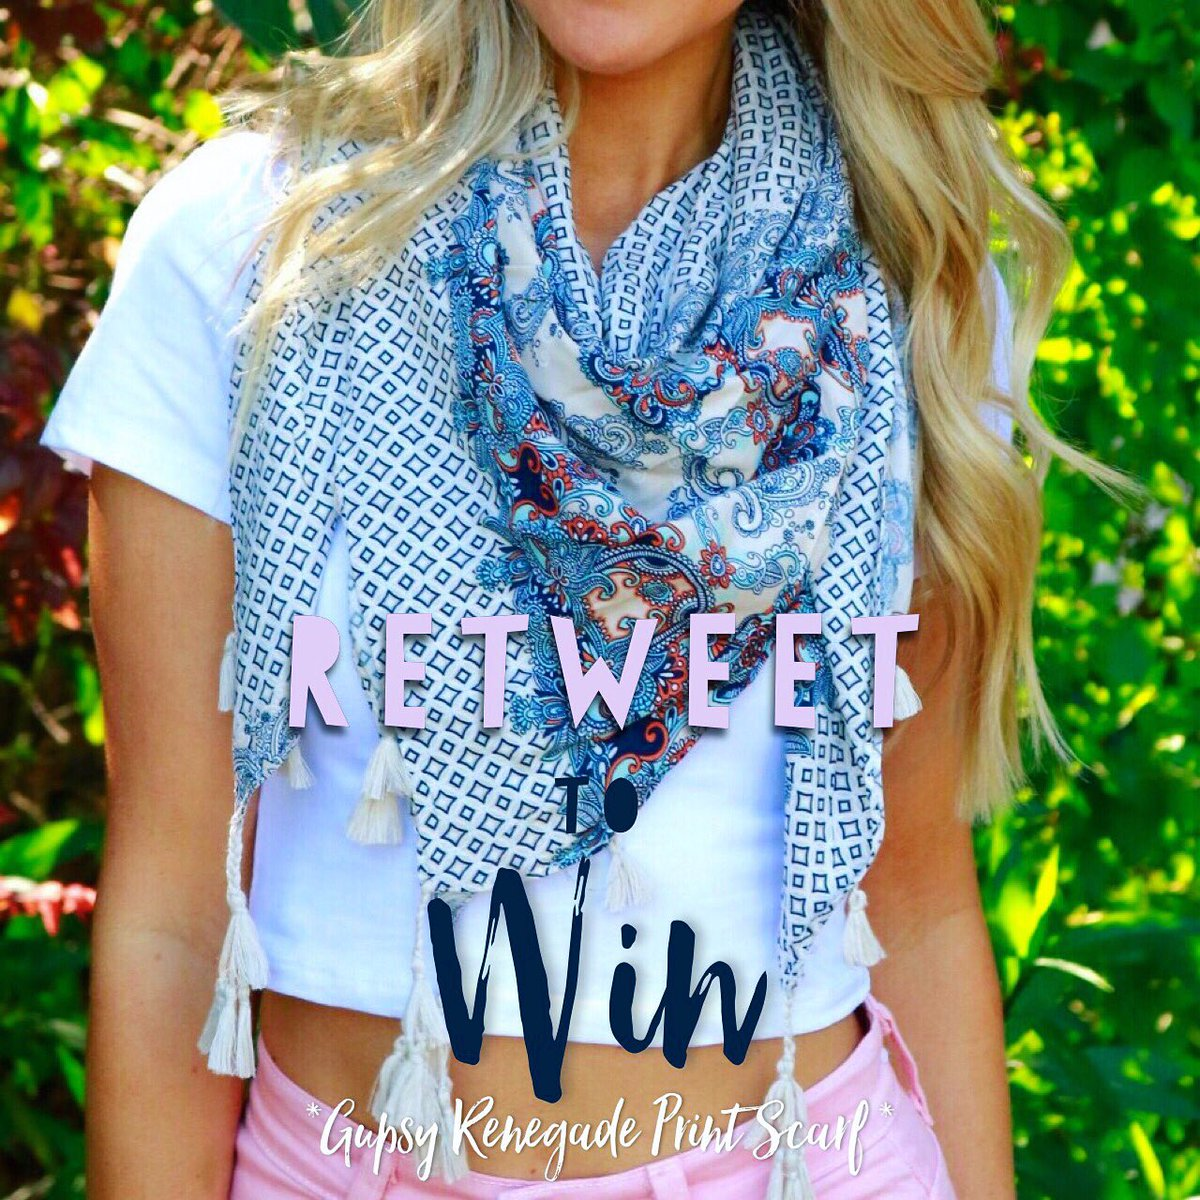 ✨ CONTEST TIME ✨ Just #retweet & follow to win! Winner will be announced tomorrow (4/20) at 5pm! Good luck